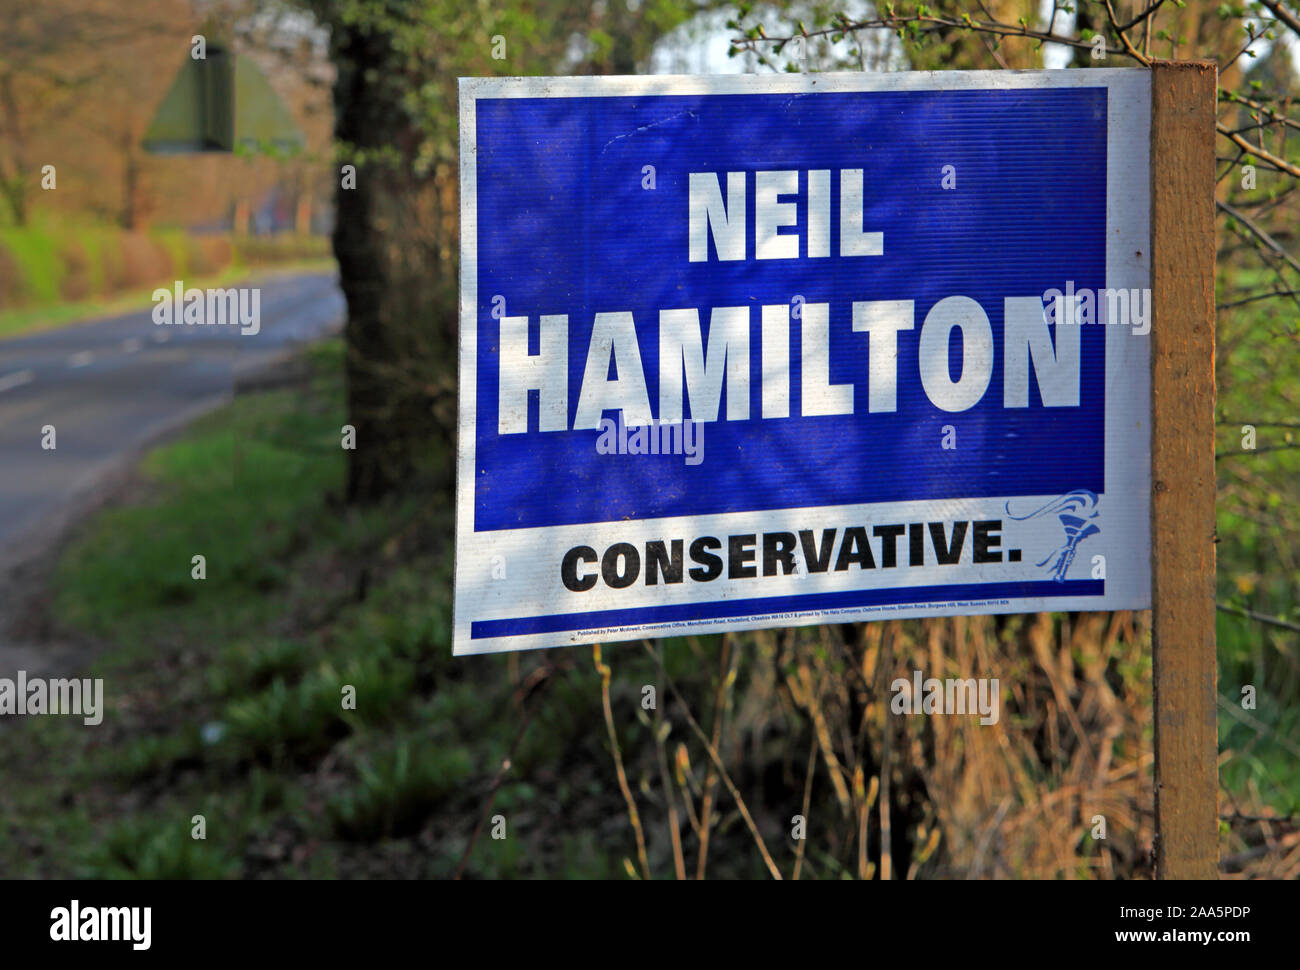 North West England,UK,UKIP,HotpixUK,@HotpixUK,GoTonySmith,Neil Hamilton,Vote,Conservative sign,Conservatives,Tory,liar,Election,Cheshire,North West,England,Tatton,ward,Tories,Cash For Questions,National Assembly for Wales,affair,sleaze,politician,Mohamed Al-Fayed,owner of Harrods,corruption,corrupt,1994,A Liar and a Cheat,parliamentary enquiry,Downey report,tobacco promotion,Skoal Bandits,legal action for libel,libel,legal action,placard,poll